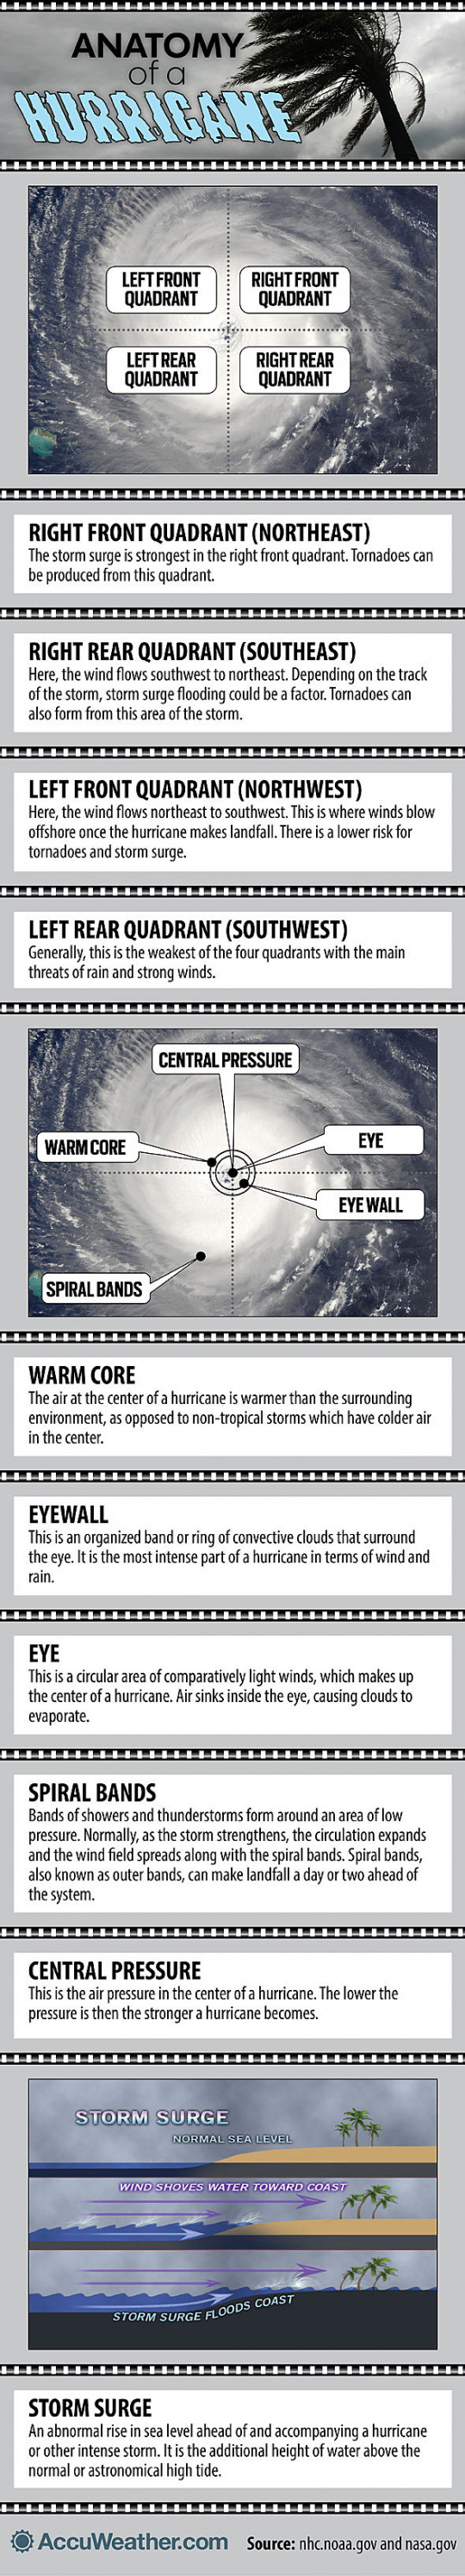 The Anatomy of a Hurricane